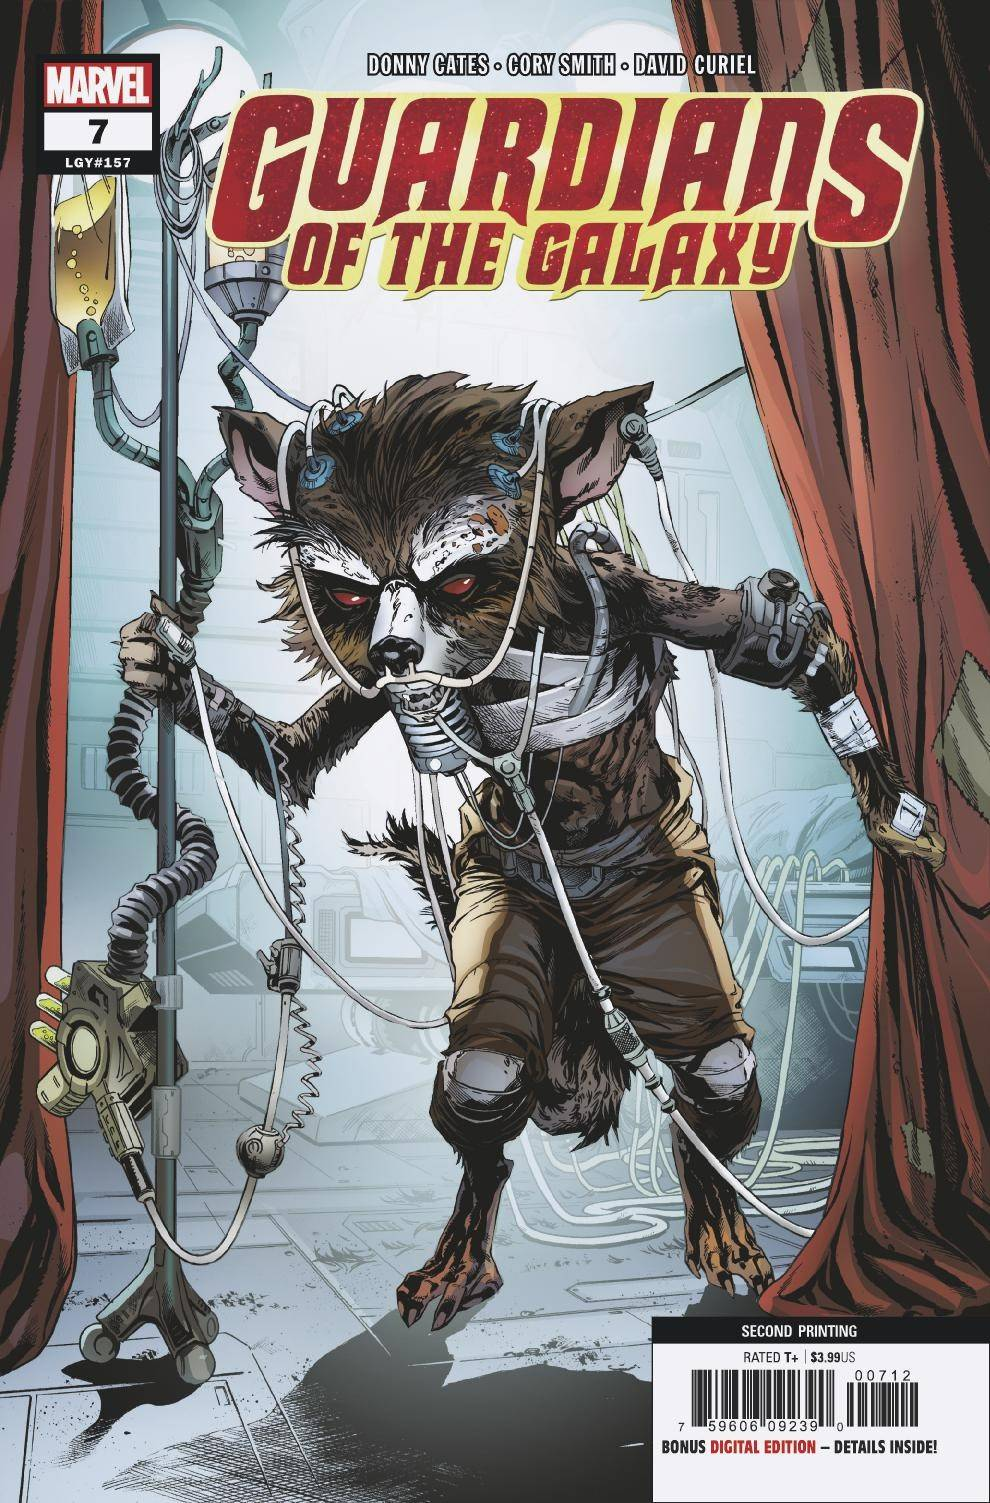 GUARDIANS OF THE GALAXY #7 2ND PTG VARIANT 08/28/19 FOC 08/05/19